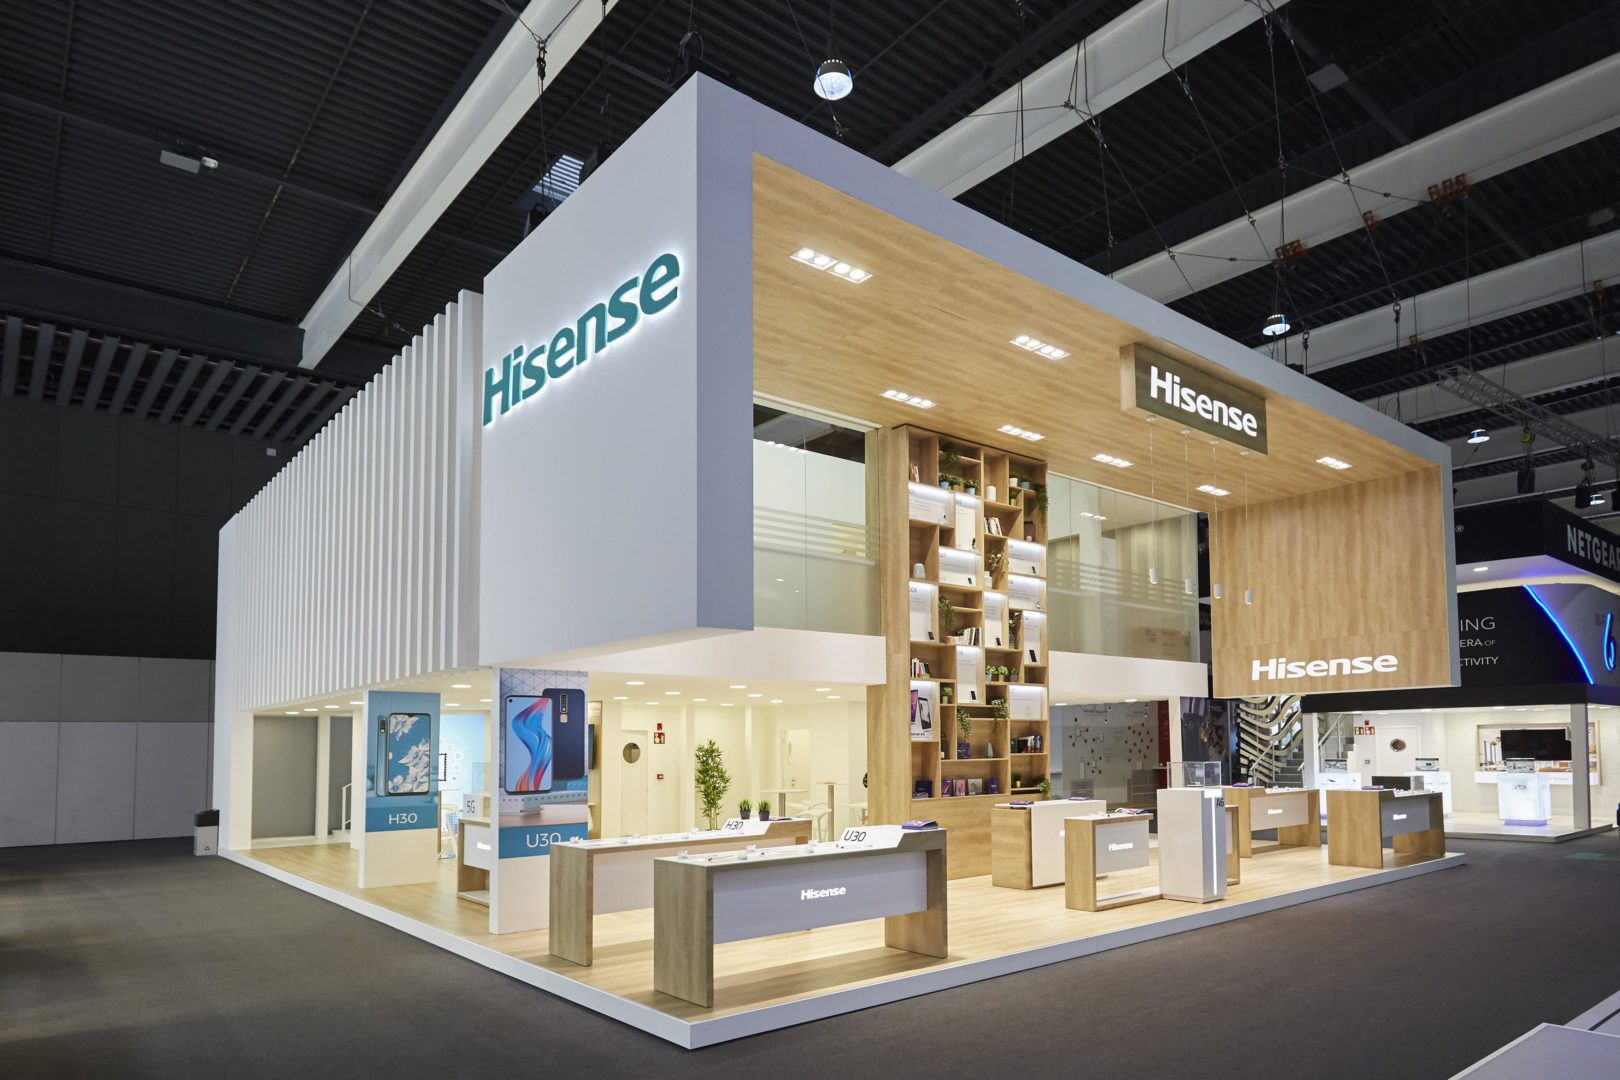 Design and construction of the Hisense stand.